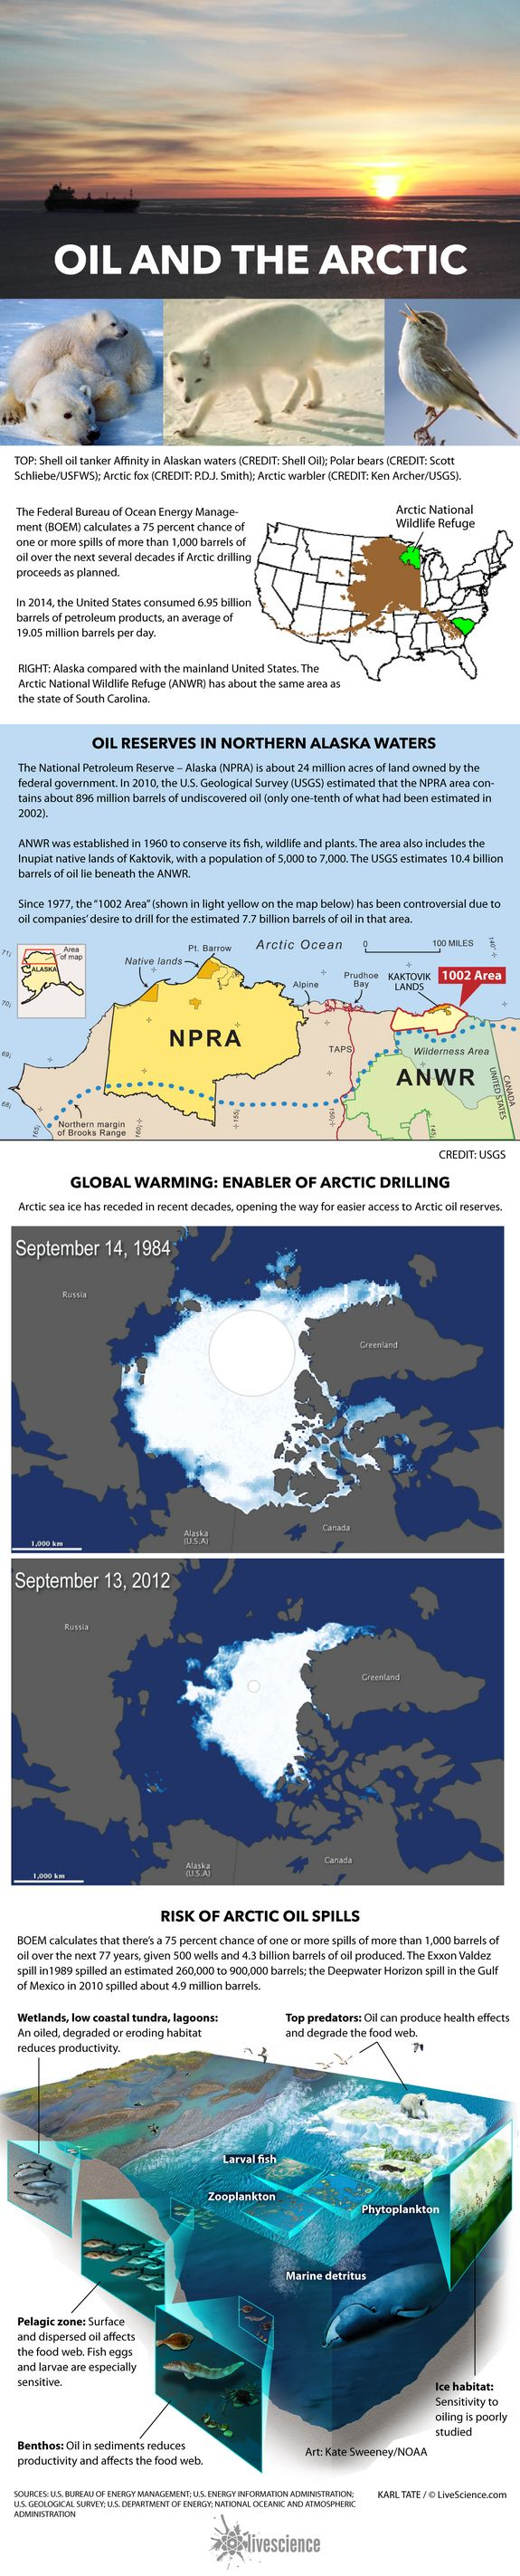 The Alaskan Arctic Oil Drilling Controversy Explained (Infographic)